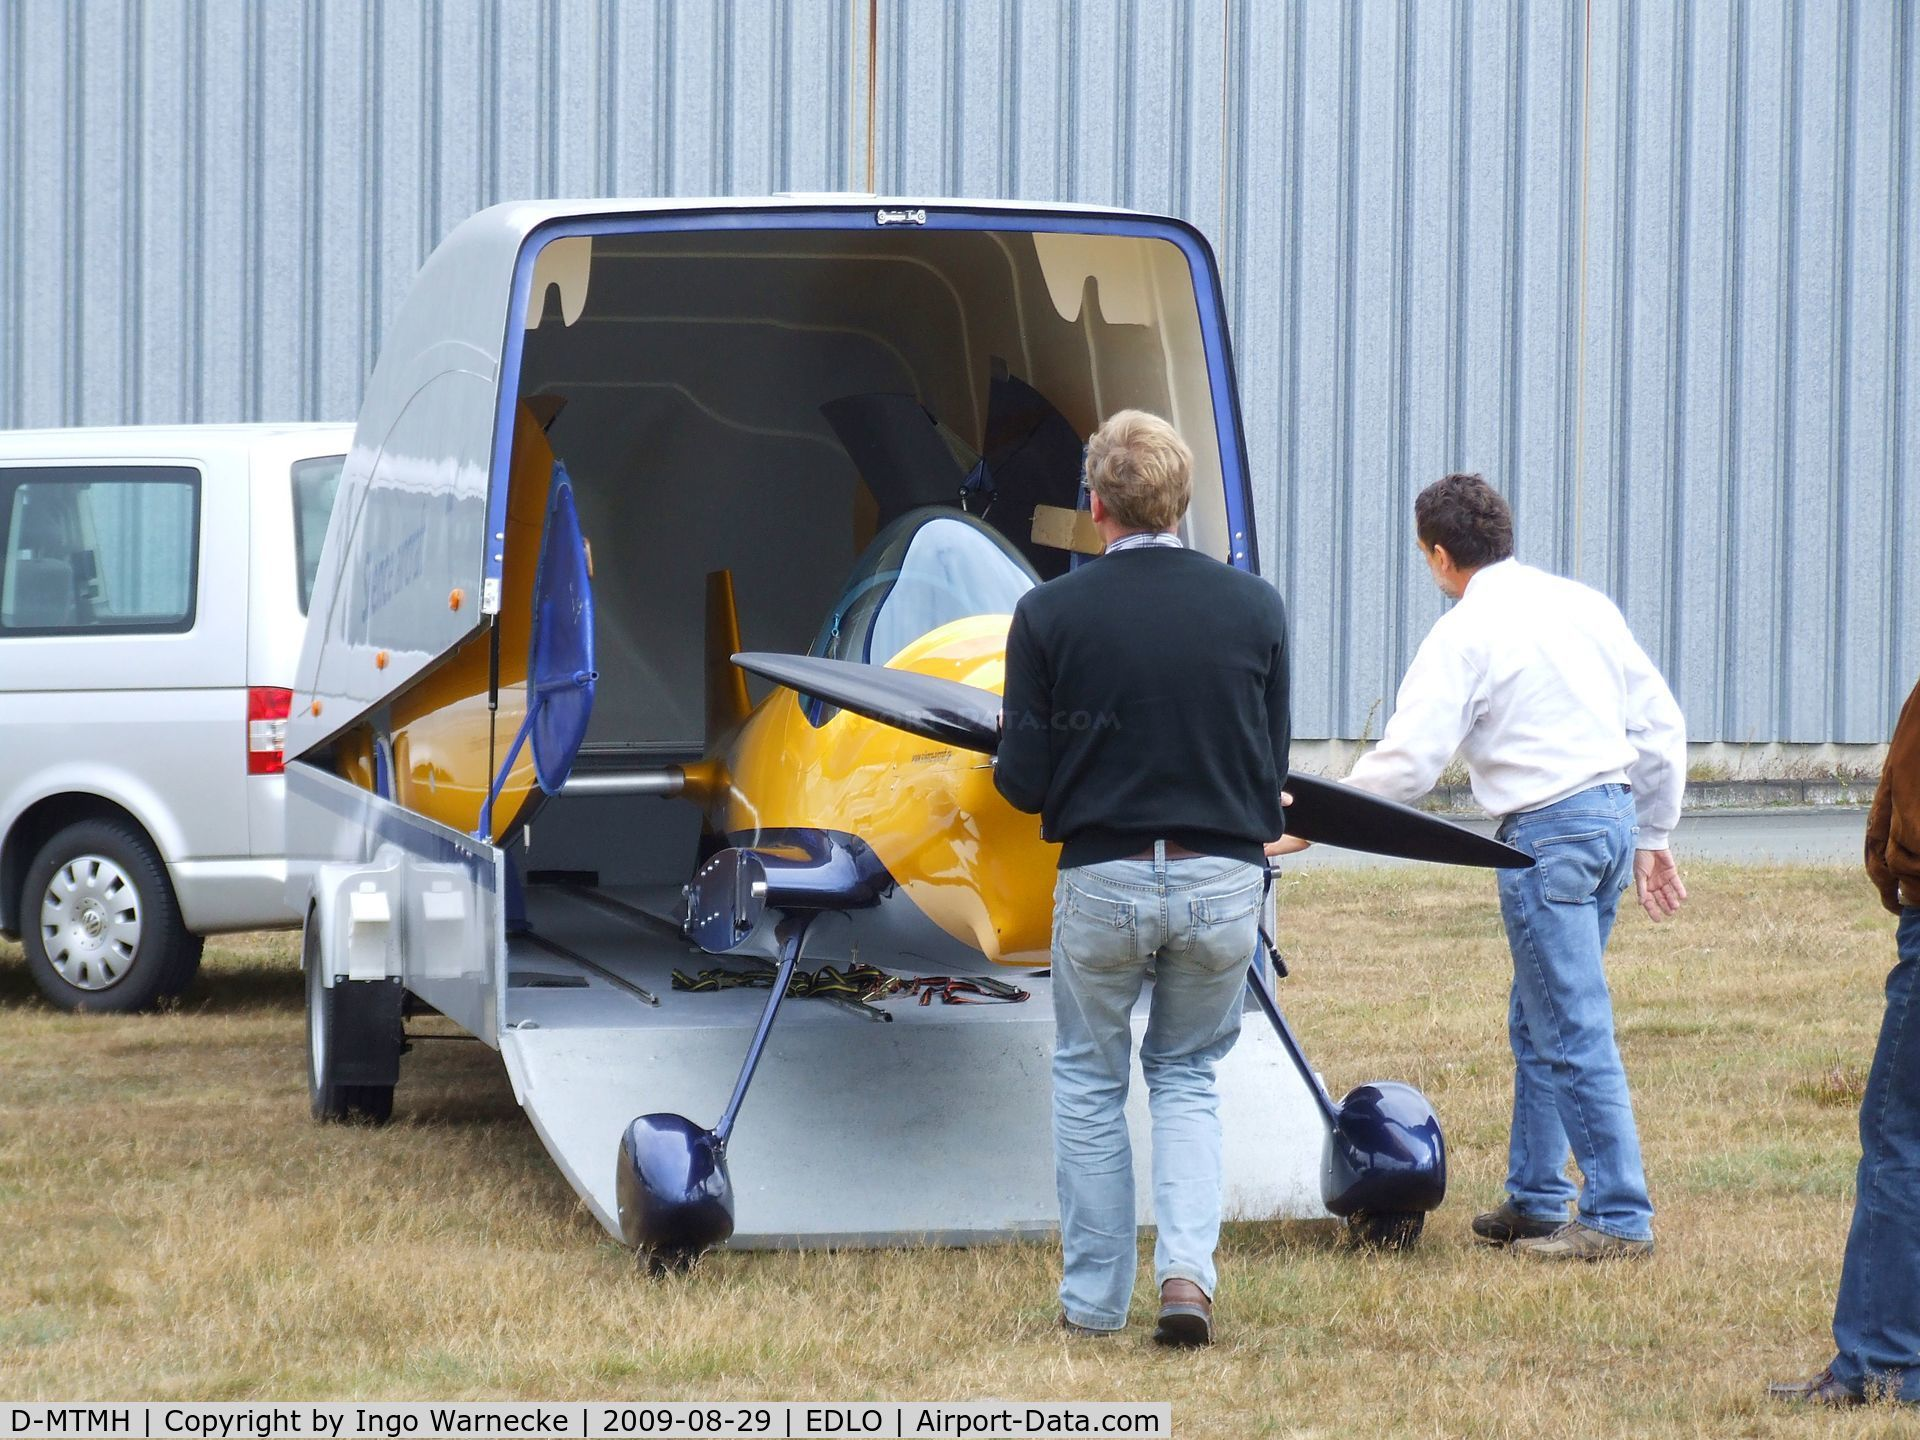 D-MTMH, 2000 Silence Twister C/N 001, Silence Twister prototype being unloaded from the company trailer at the 2009 OUV-Meeting at Oerlinghausen airfield